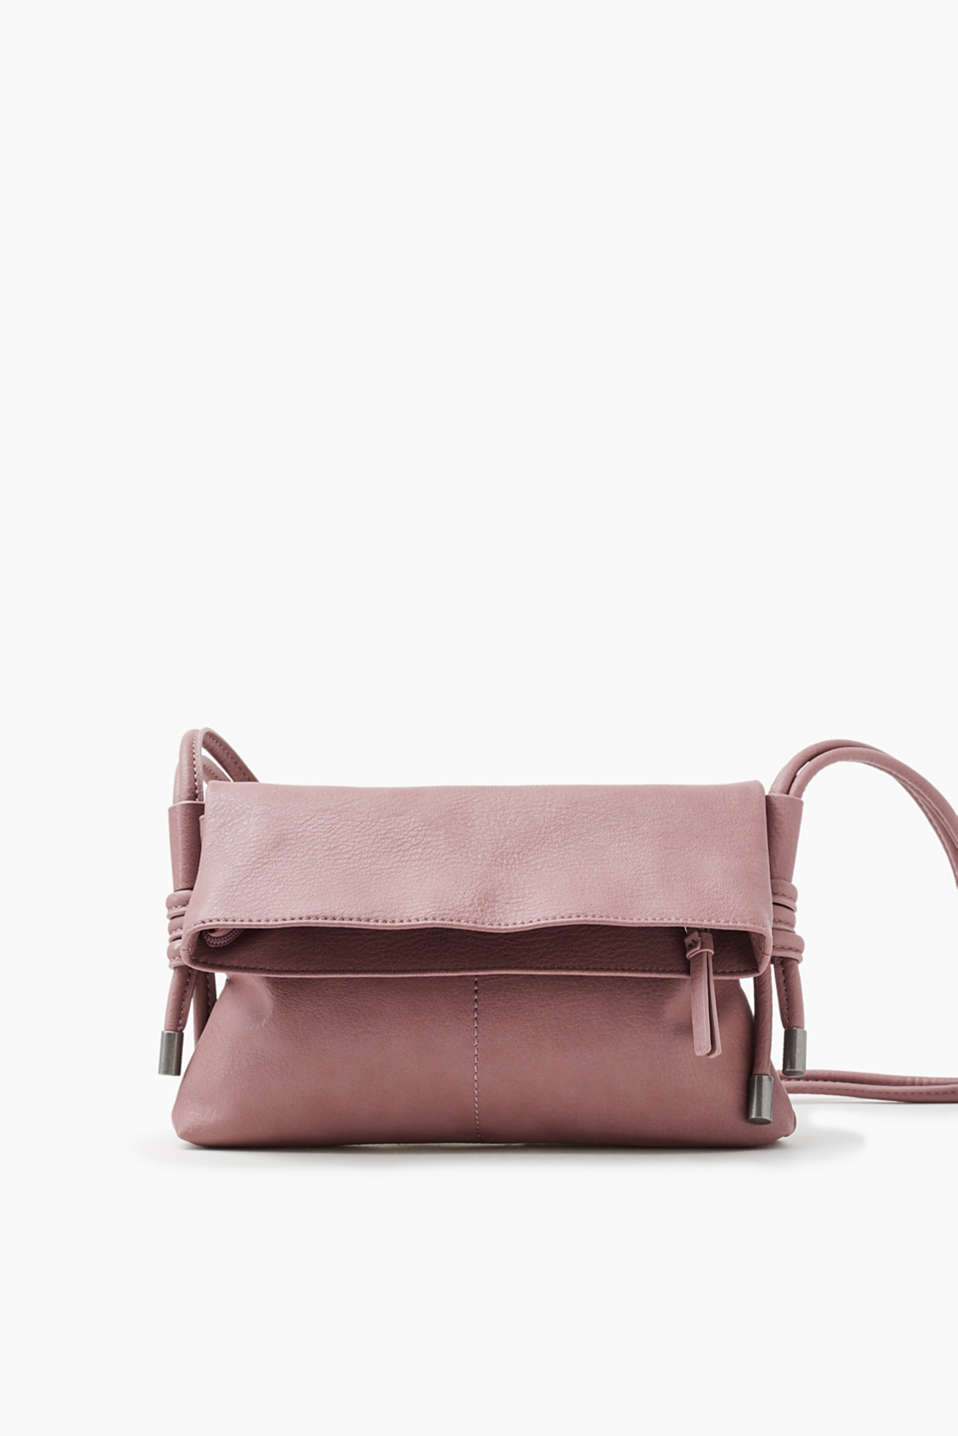 Smooth faux leather flap bag: the length of the shoulder strap can be adjusted